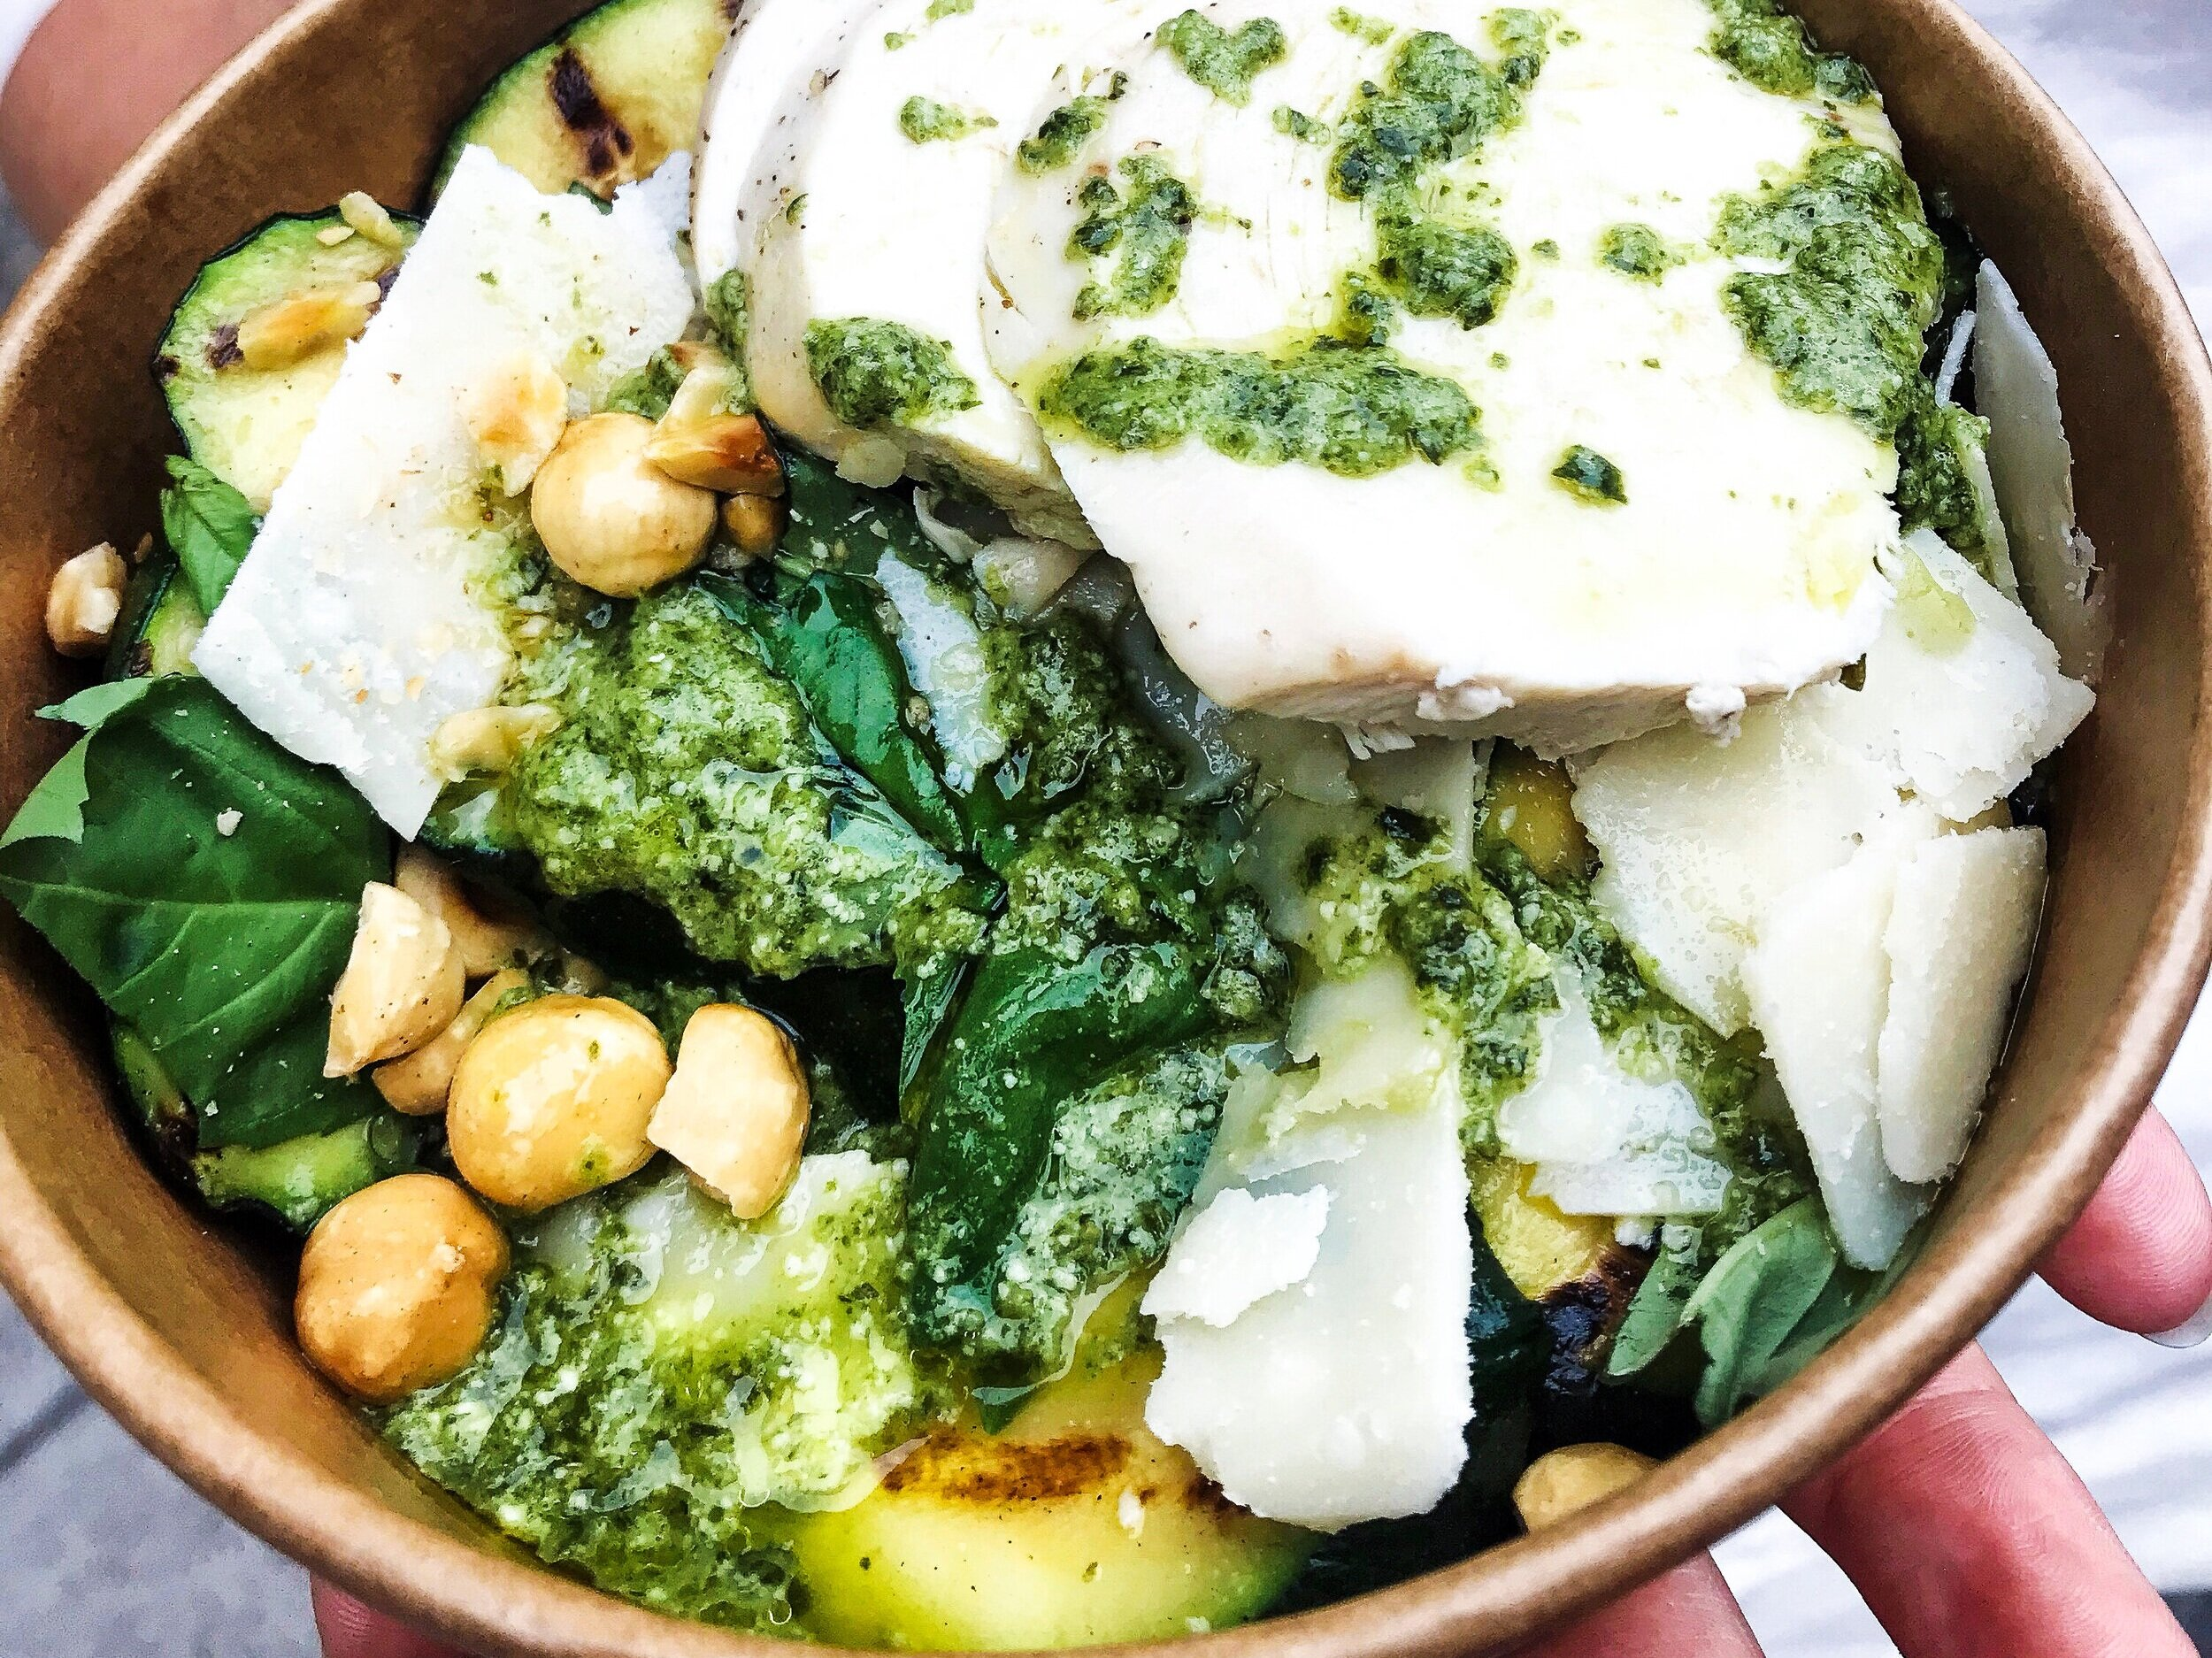 chargrilled courgette,chicken, farro,hazelnut pesto £8.50 - free range roast chicken, local chargrilled courgettes, farmers market greens, farro with a pesto dressing,£8.50 per person or £42.50 for a platter for 5add avocado +£1.50